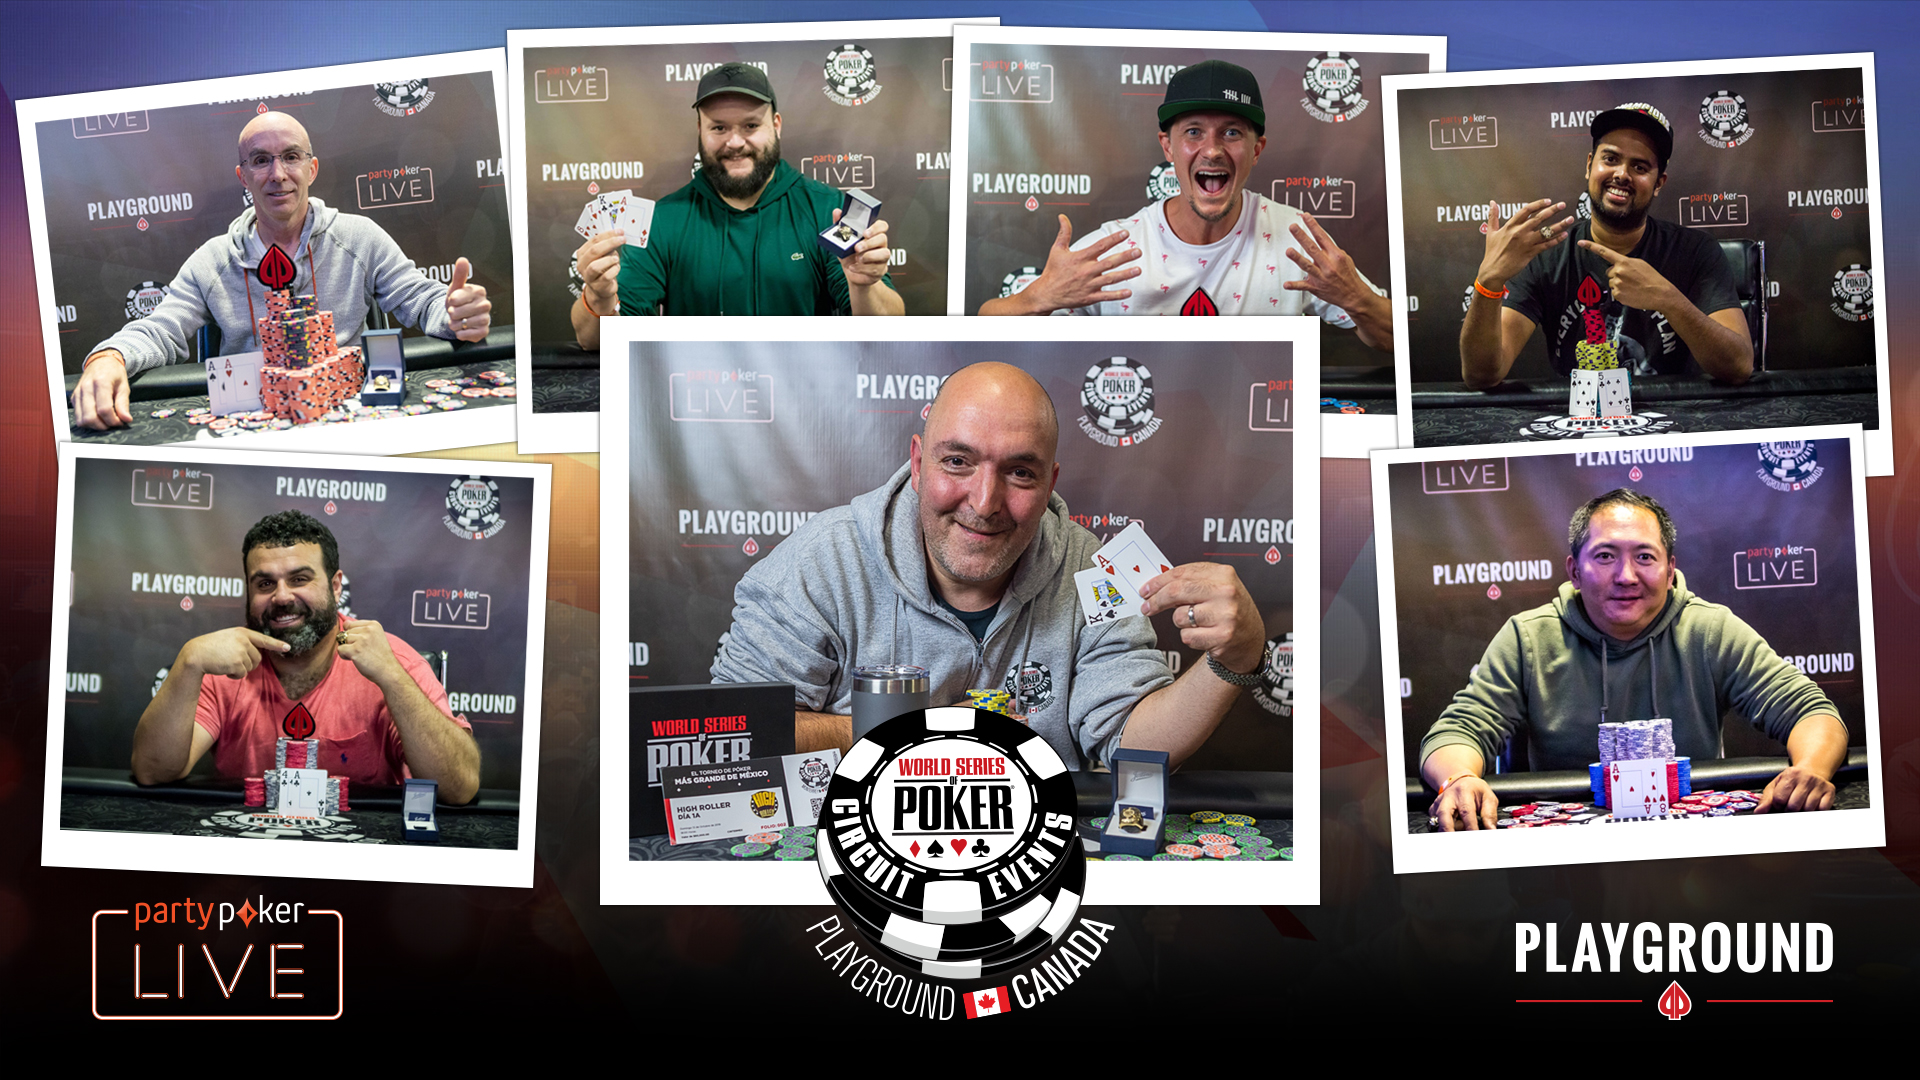 The WSOP-C Playground does it again!